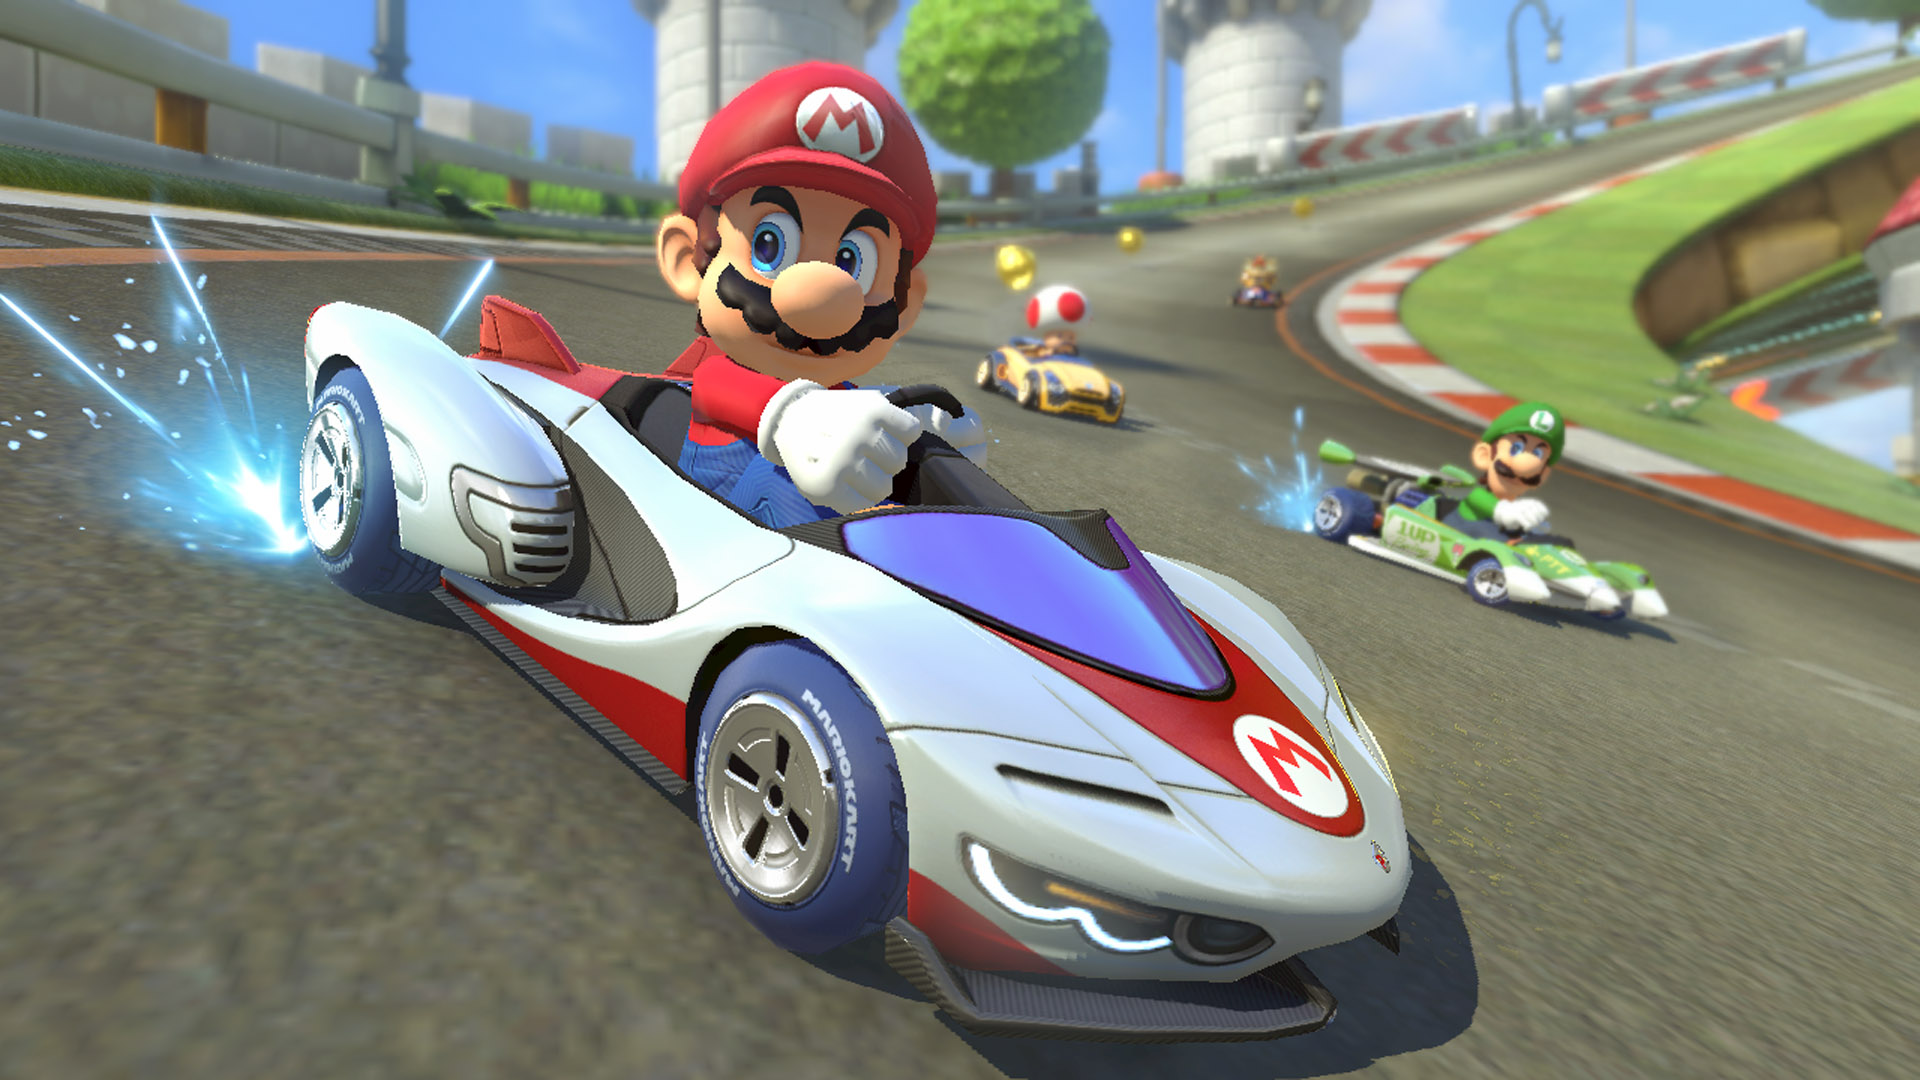 Mario Kart 8 Dlc Pack 2 And 200cc Mode Update Now